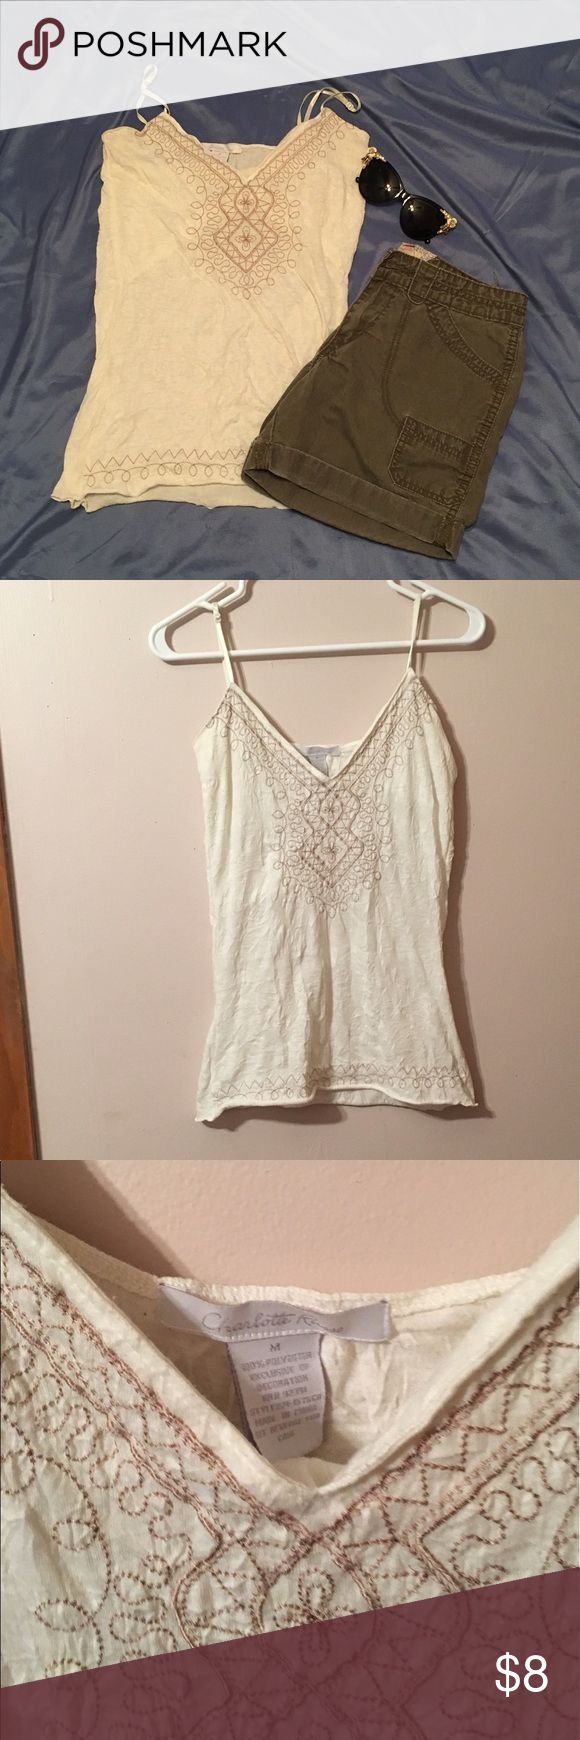 😻Medium Charlotte Rouse tank top Medium/ off white top with brown embroidery/ spaghetti strap Tops Tank Tops